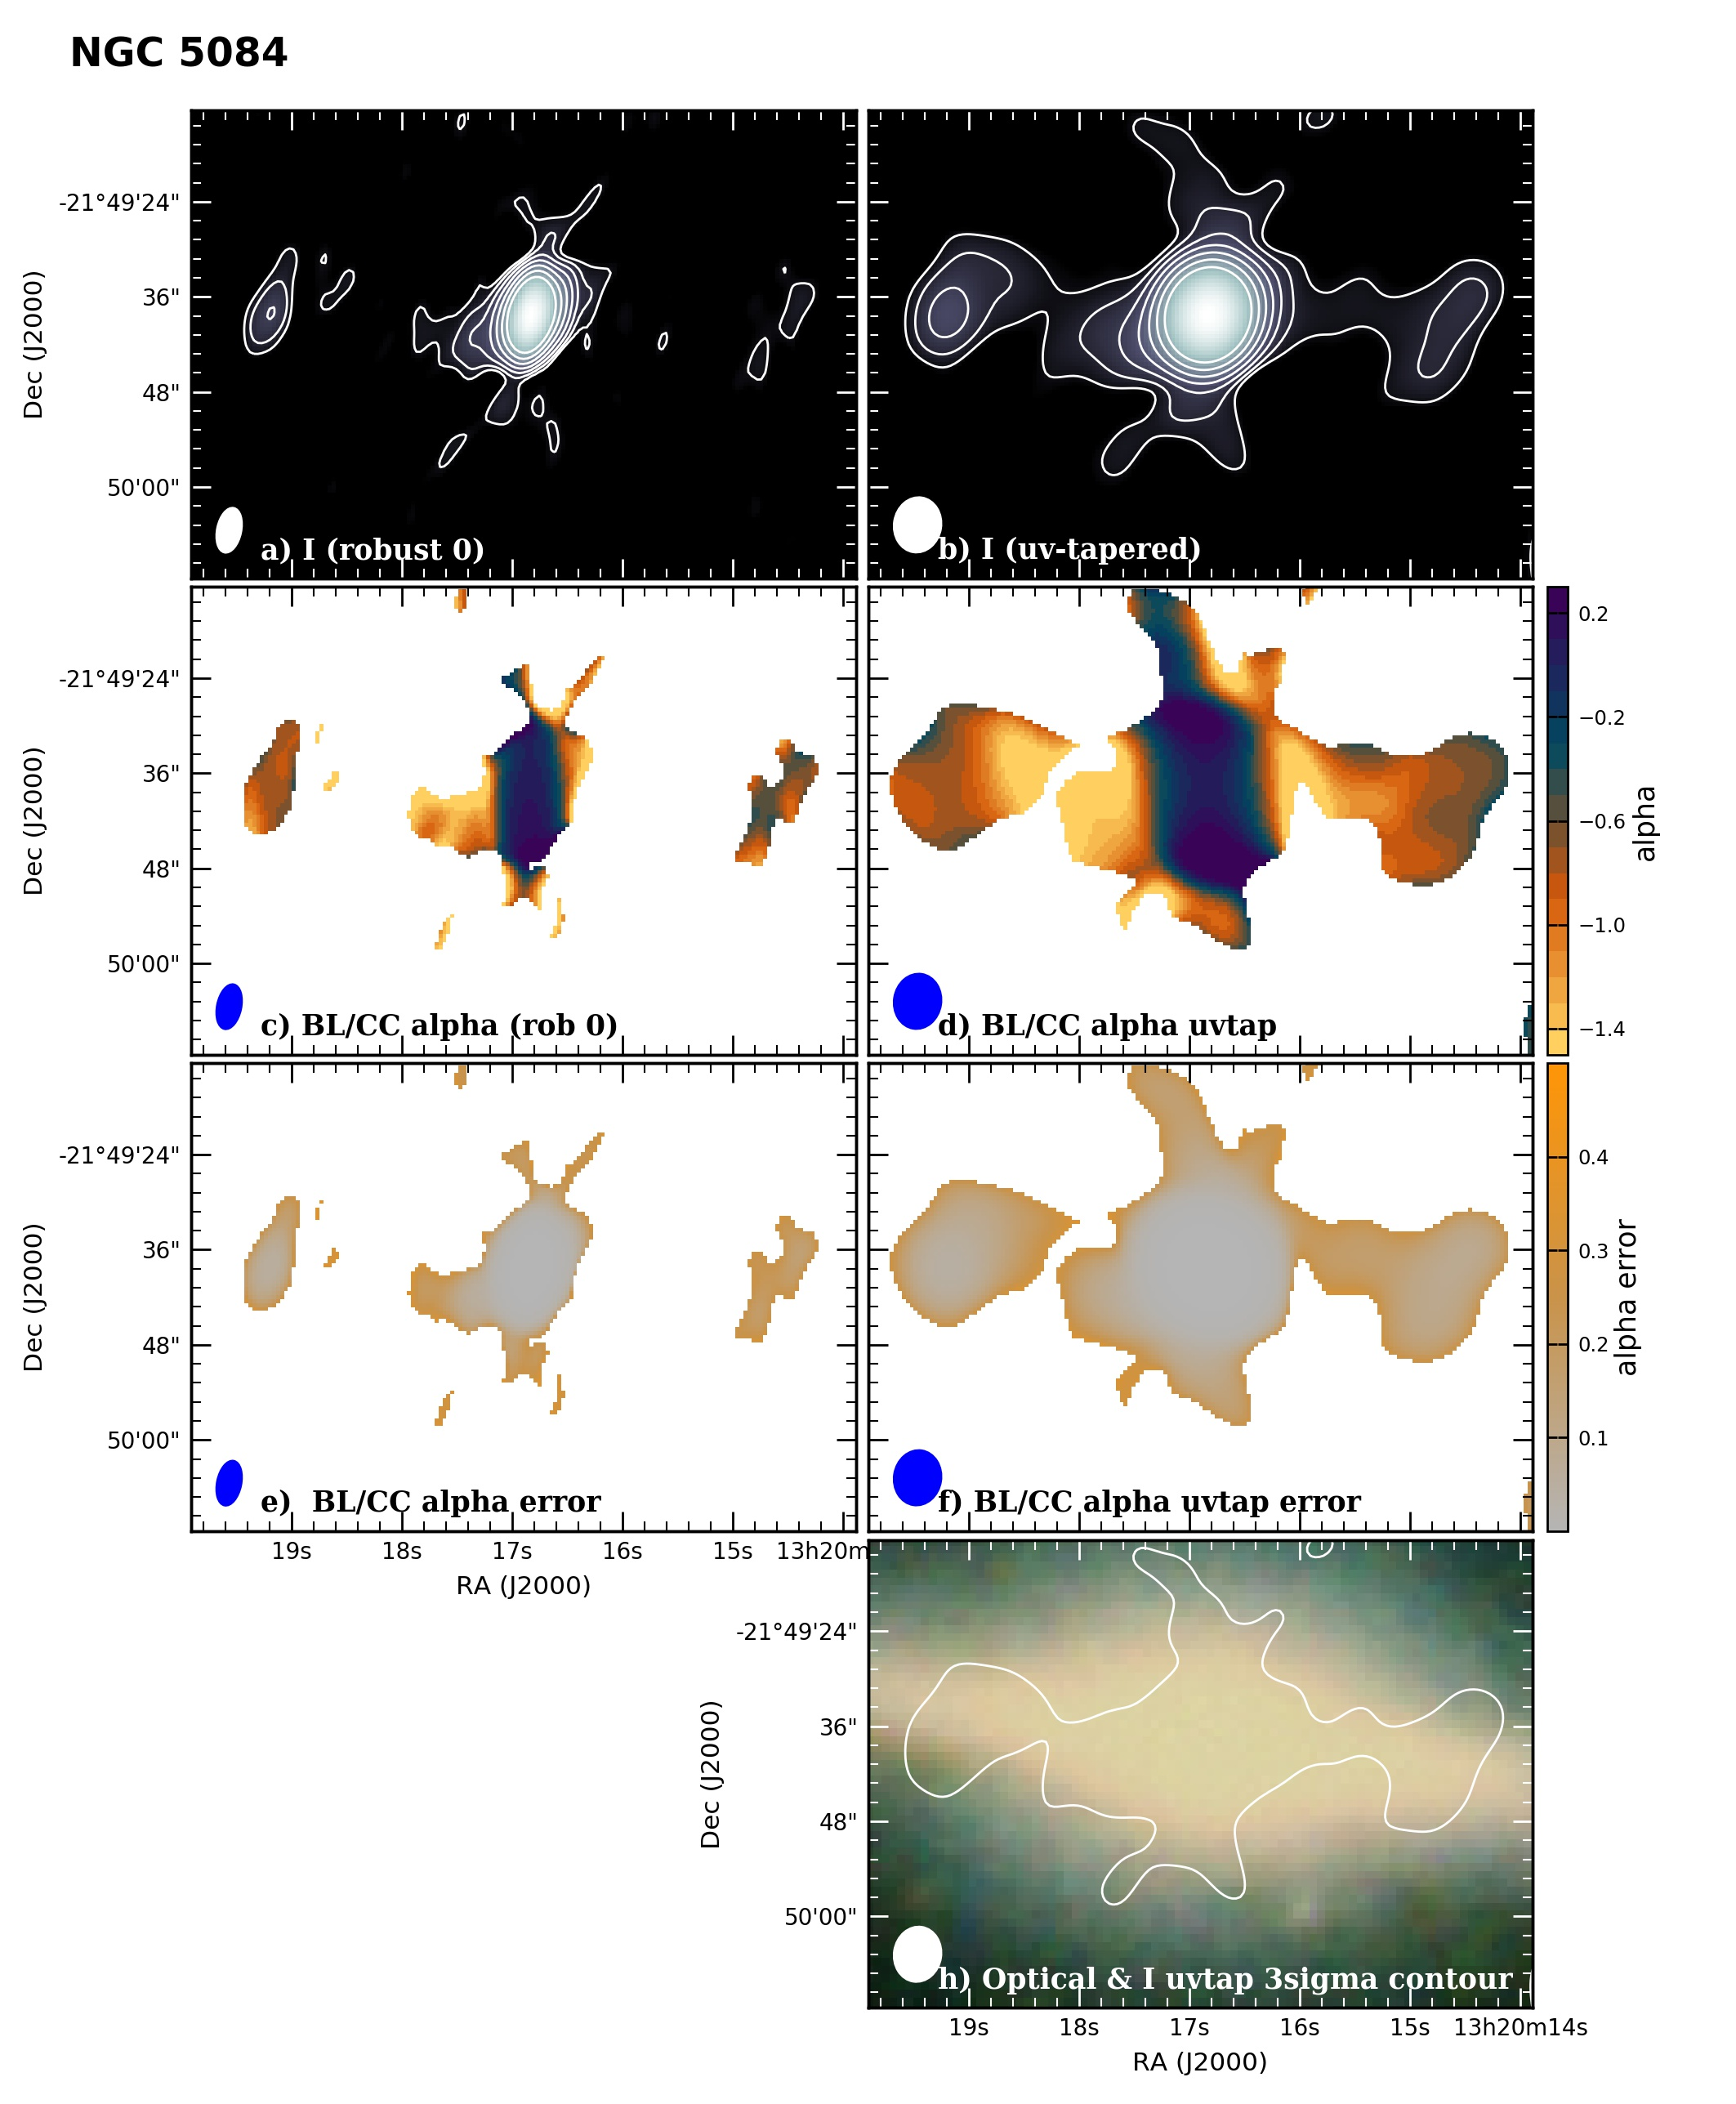 Panel image of NGC5084 from B configuration data release III (Irwin et al. 2019)